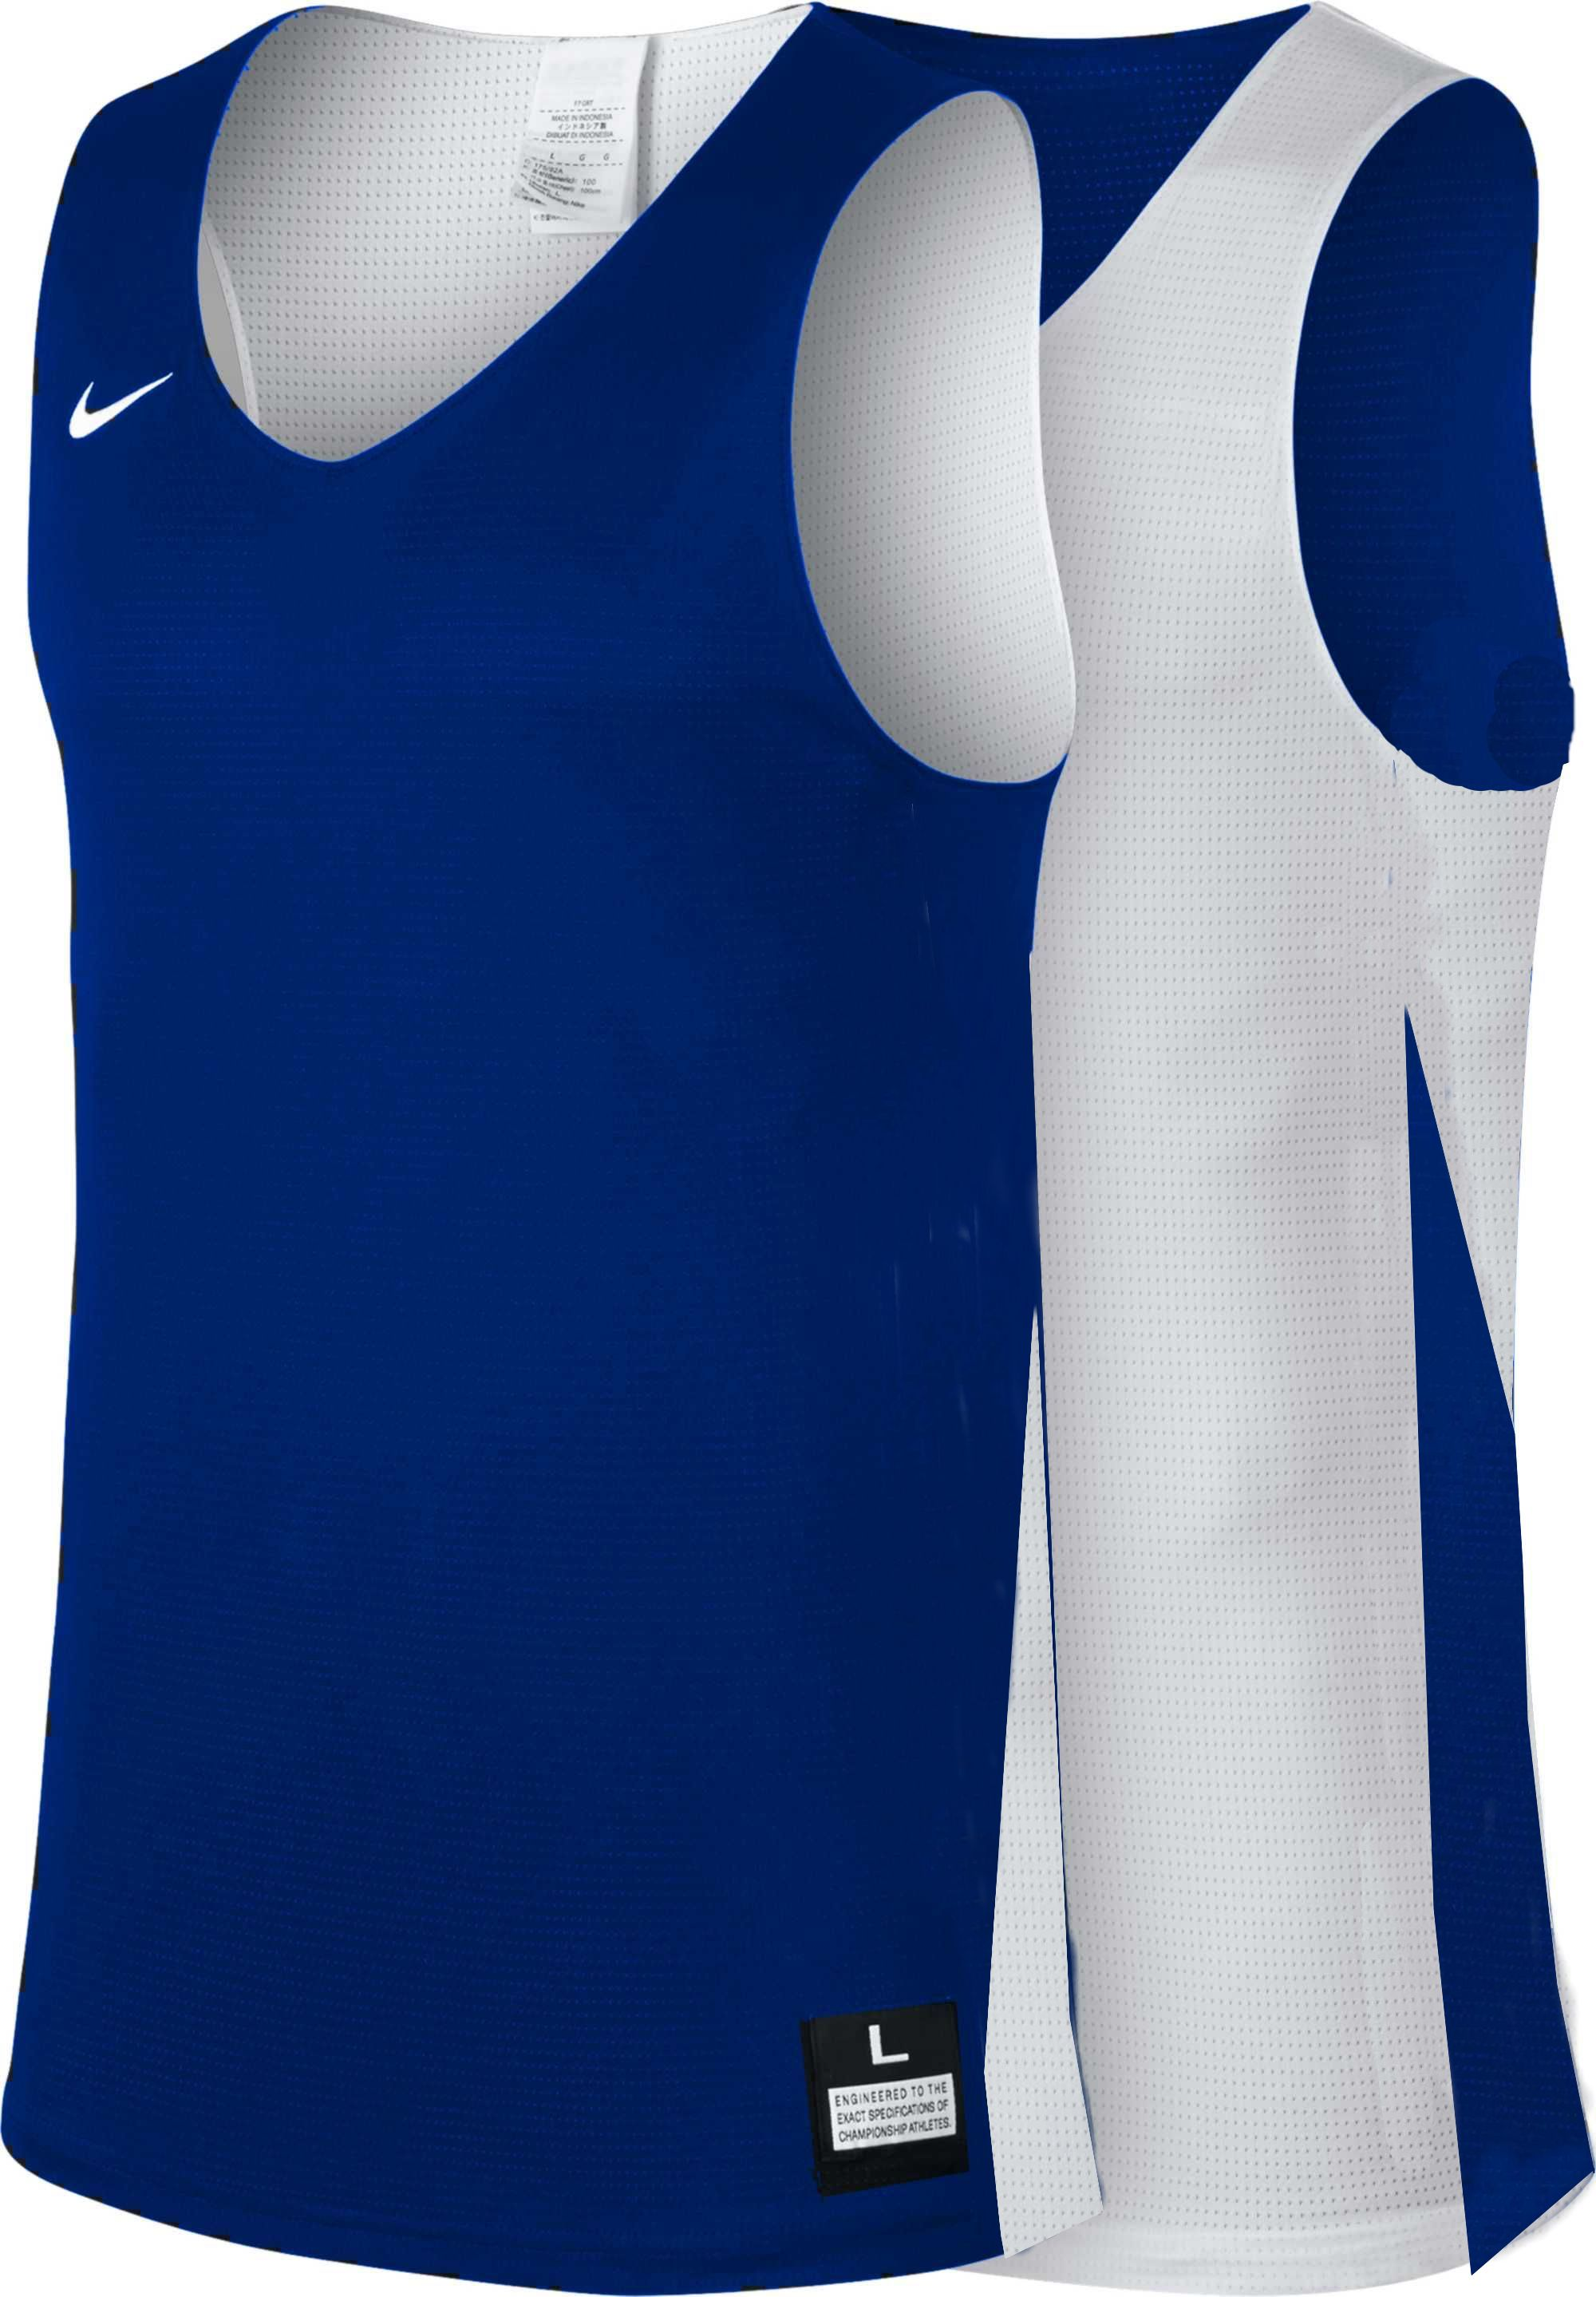 Teamwear - Nike Women's Team Basketball Reversible Jersey - Royal Blue/White - NK-NT0213-463